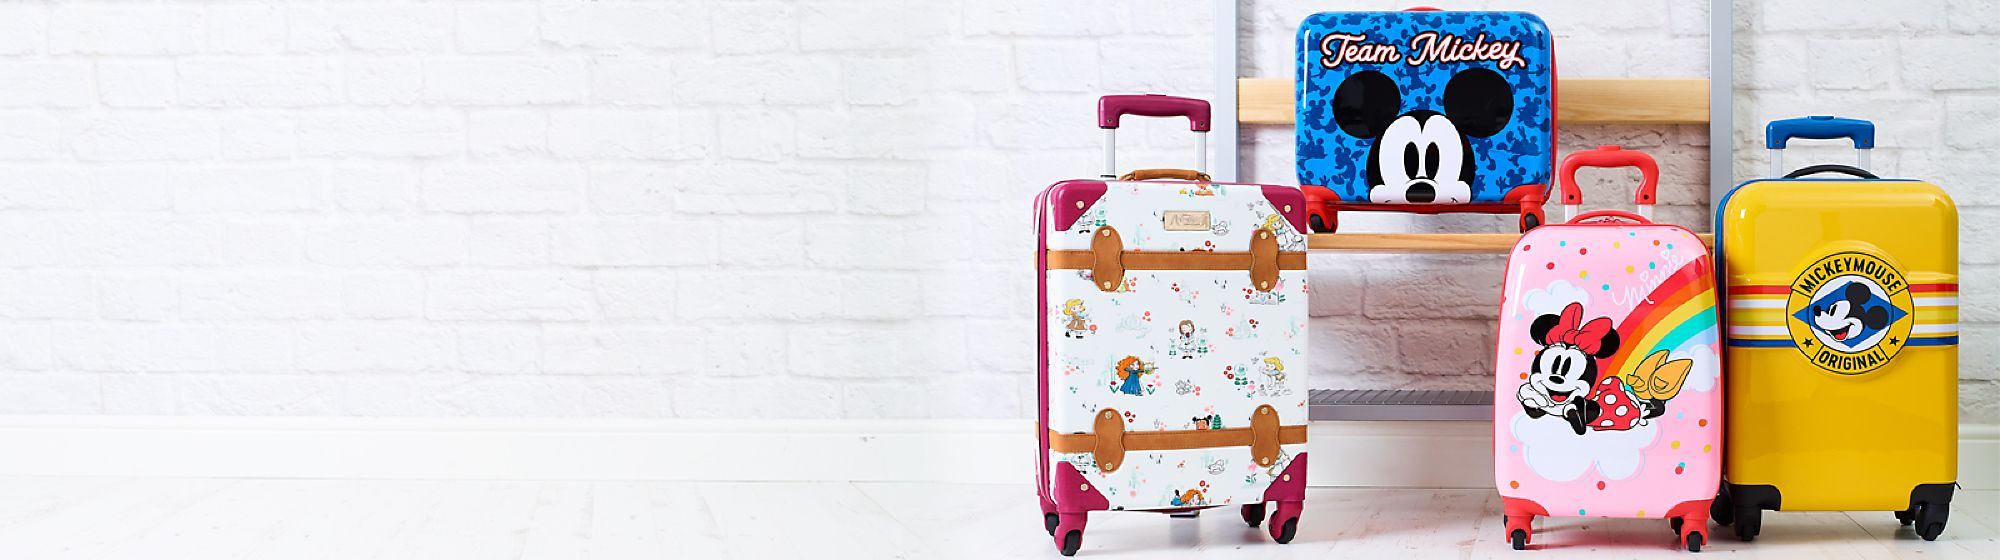 Suitcases & Luggage Pack up the magic with our range of Disney, Pixar, Star Wars and Marvel luggage